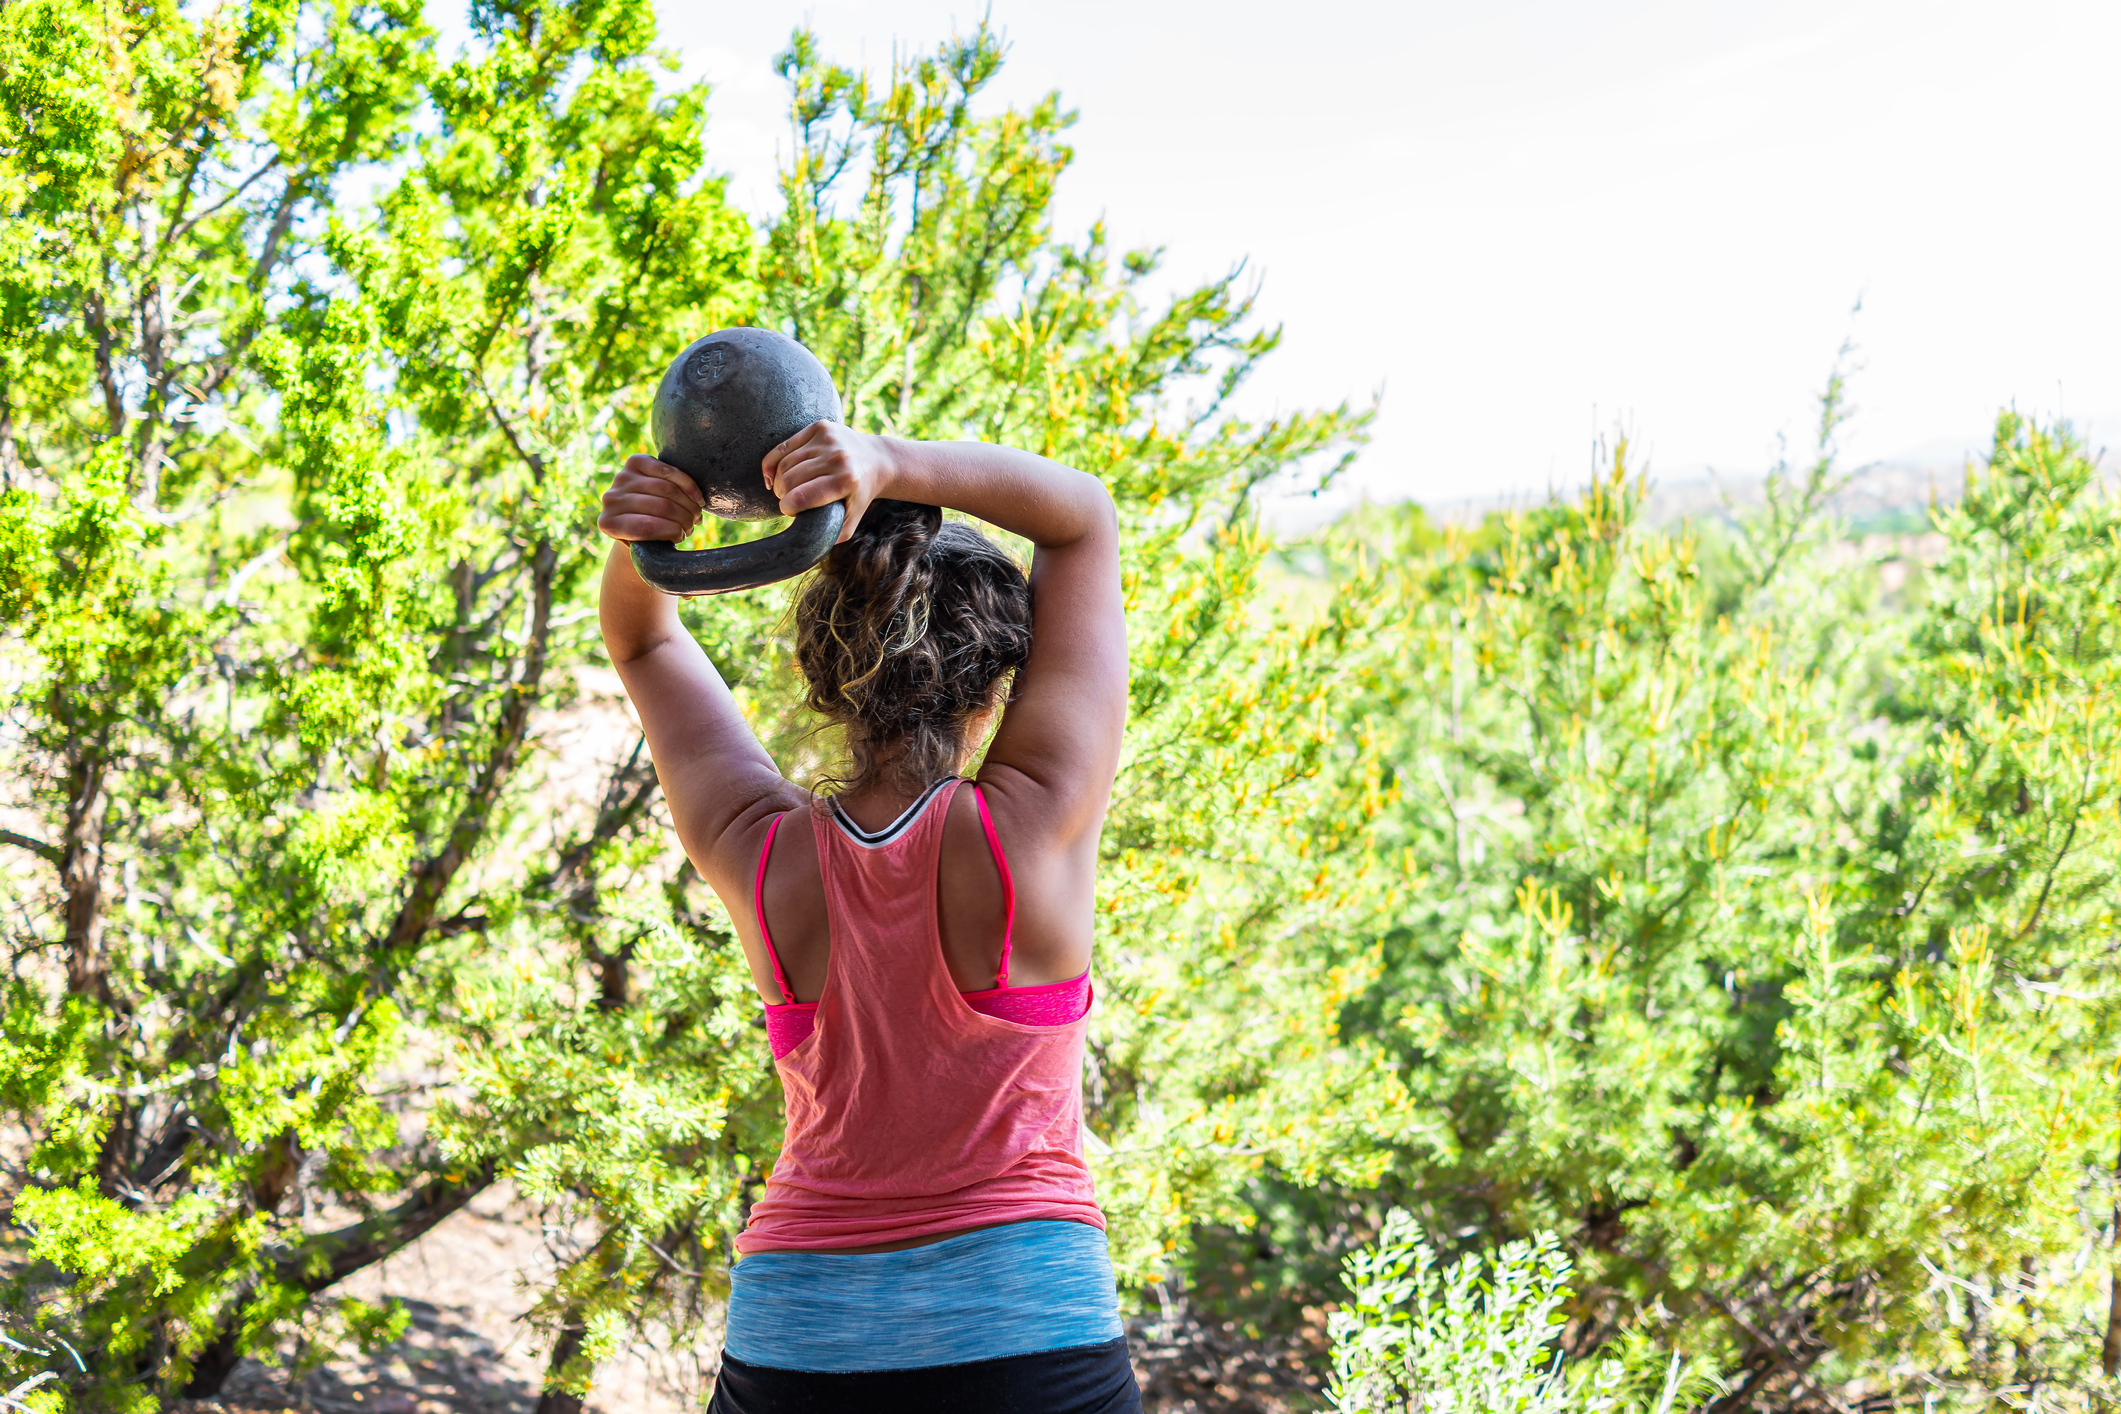 Back of young fit woman with heavy kettlebell doing triceps exercise and muscles in outdoors outside park holding weight lifting